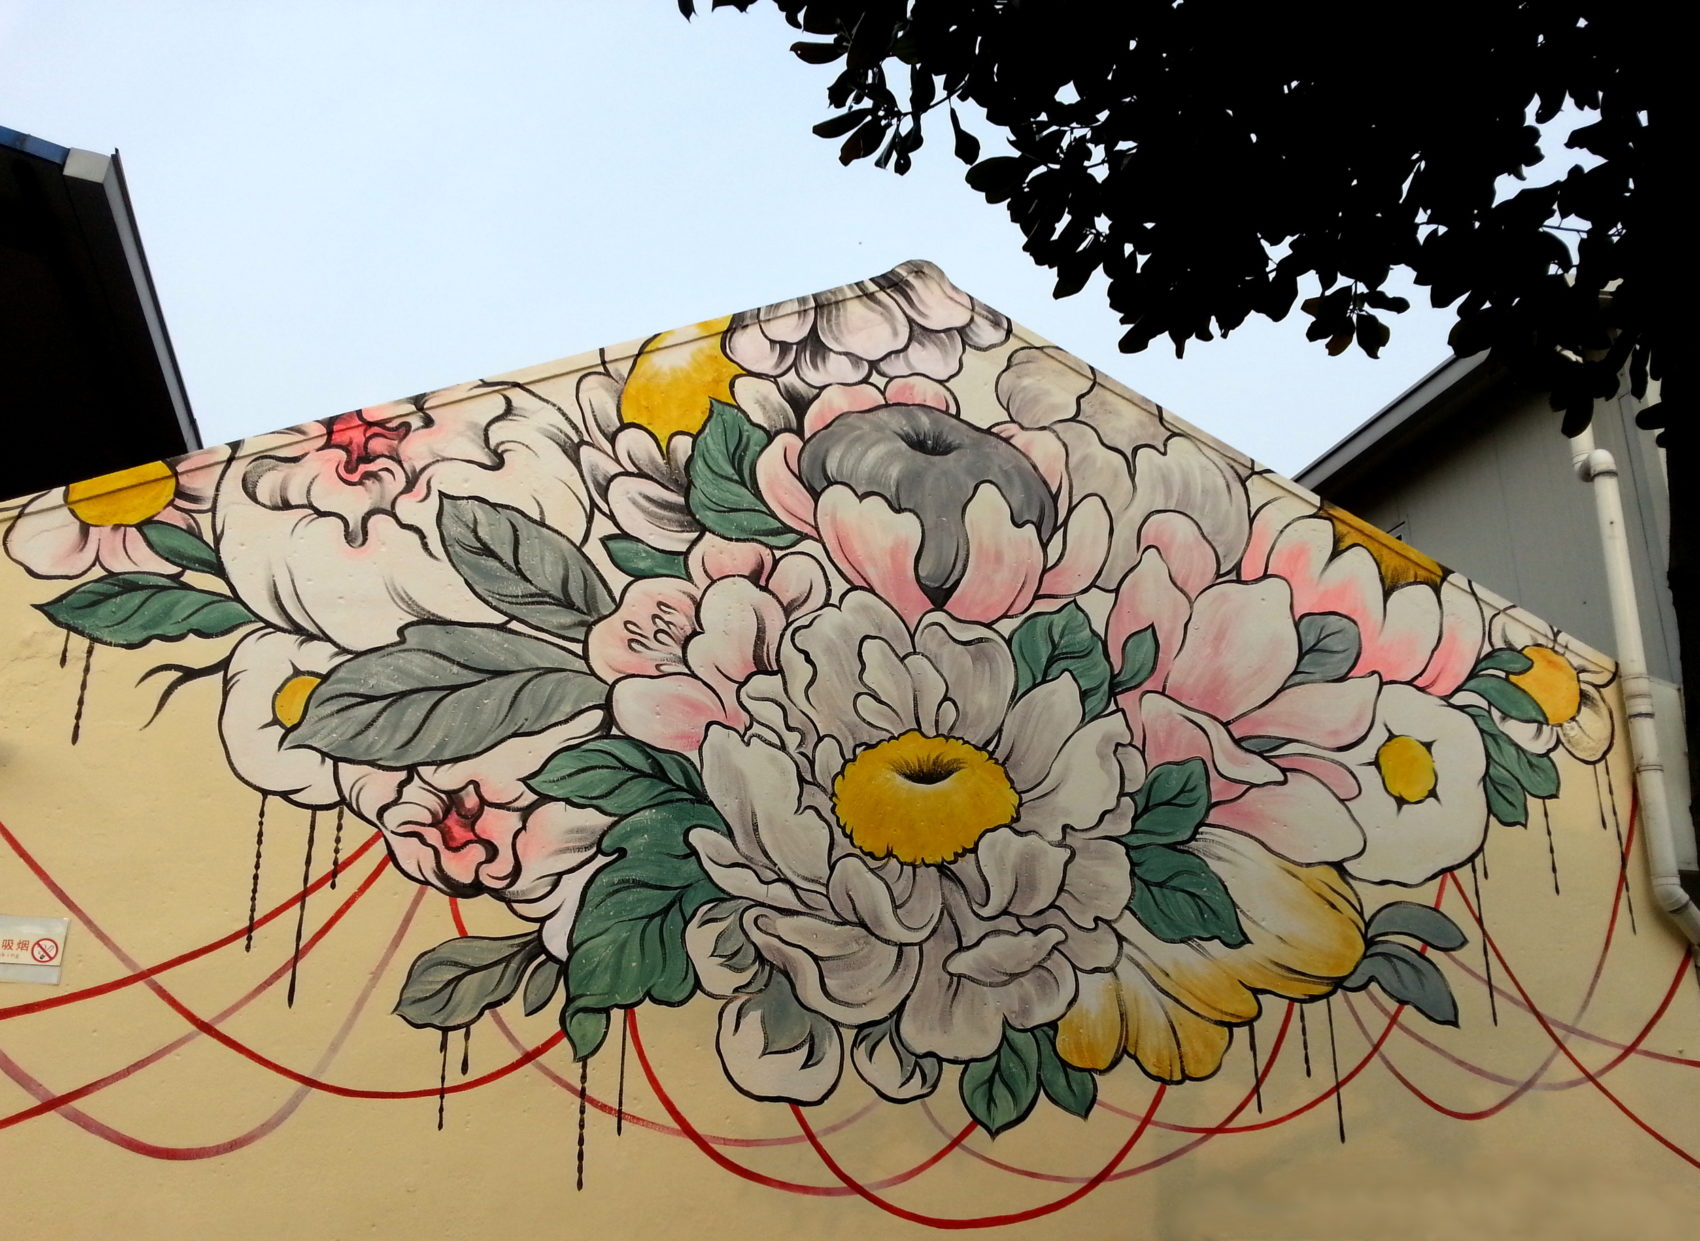 Stunning Huge Murals Floral by Ouizi 3 Stunning Huge Murals Floral by Ouizi